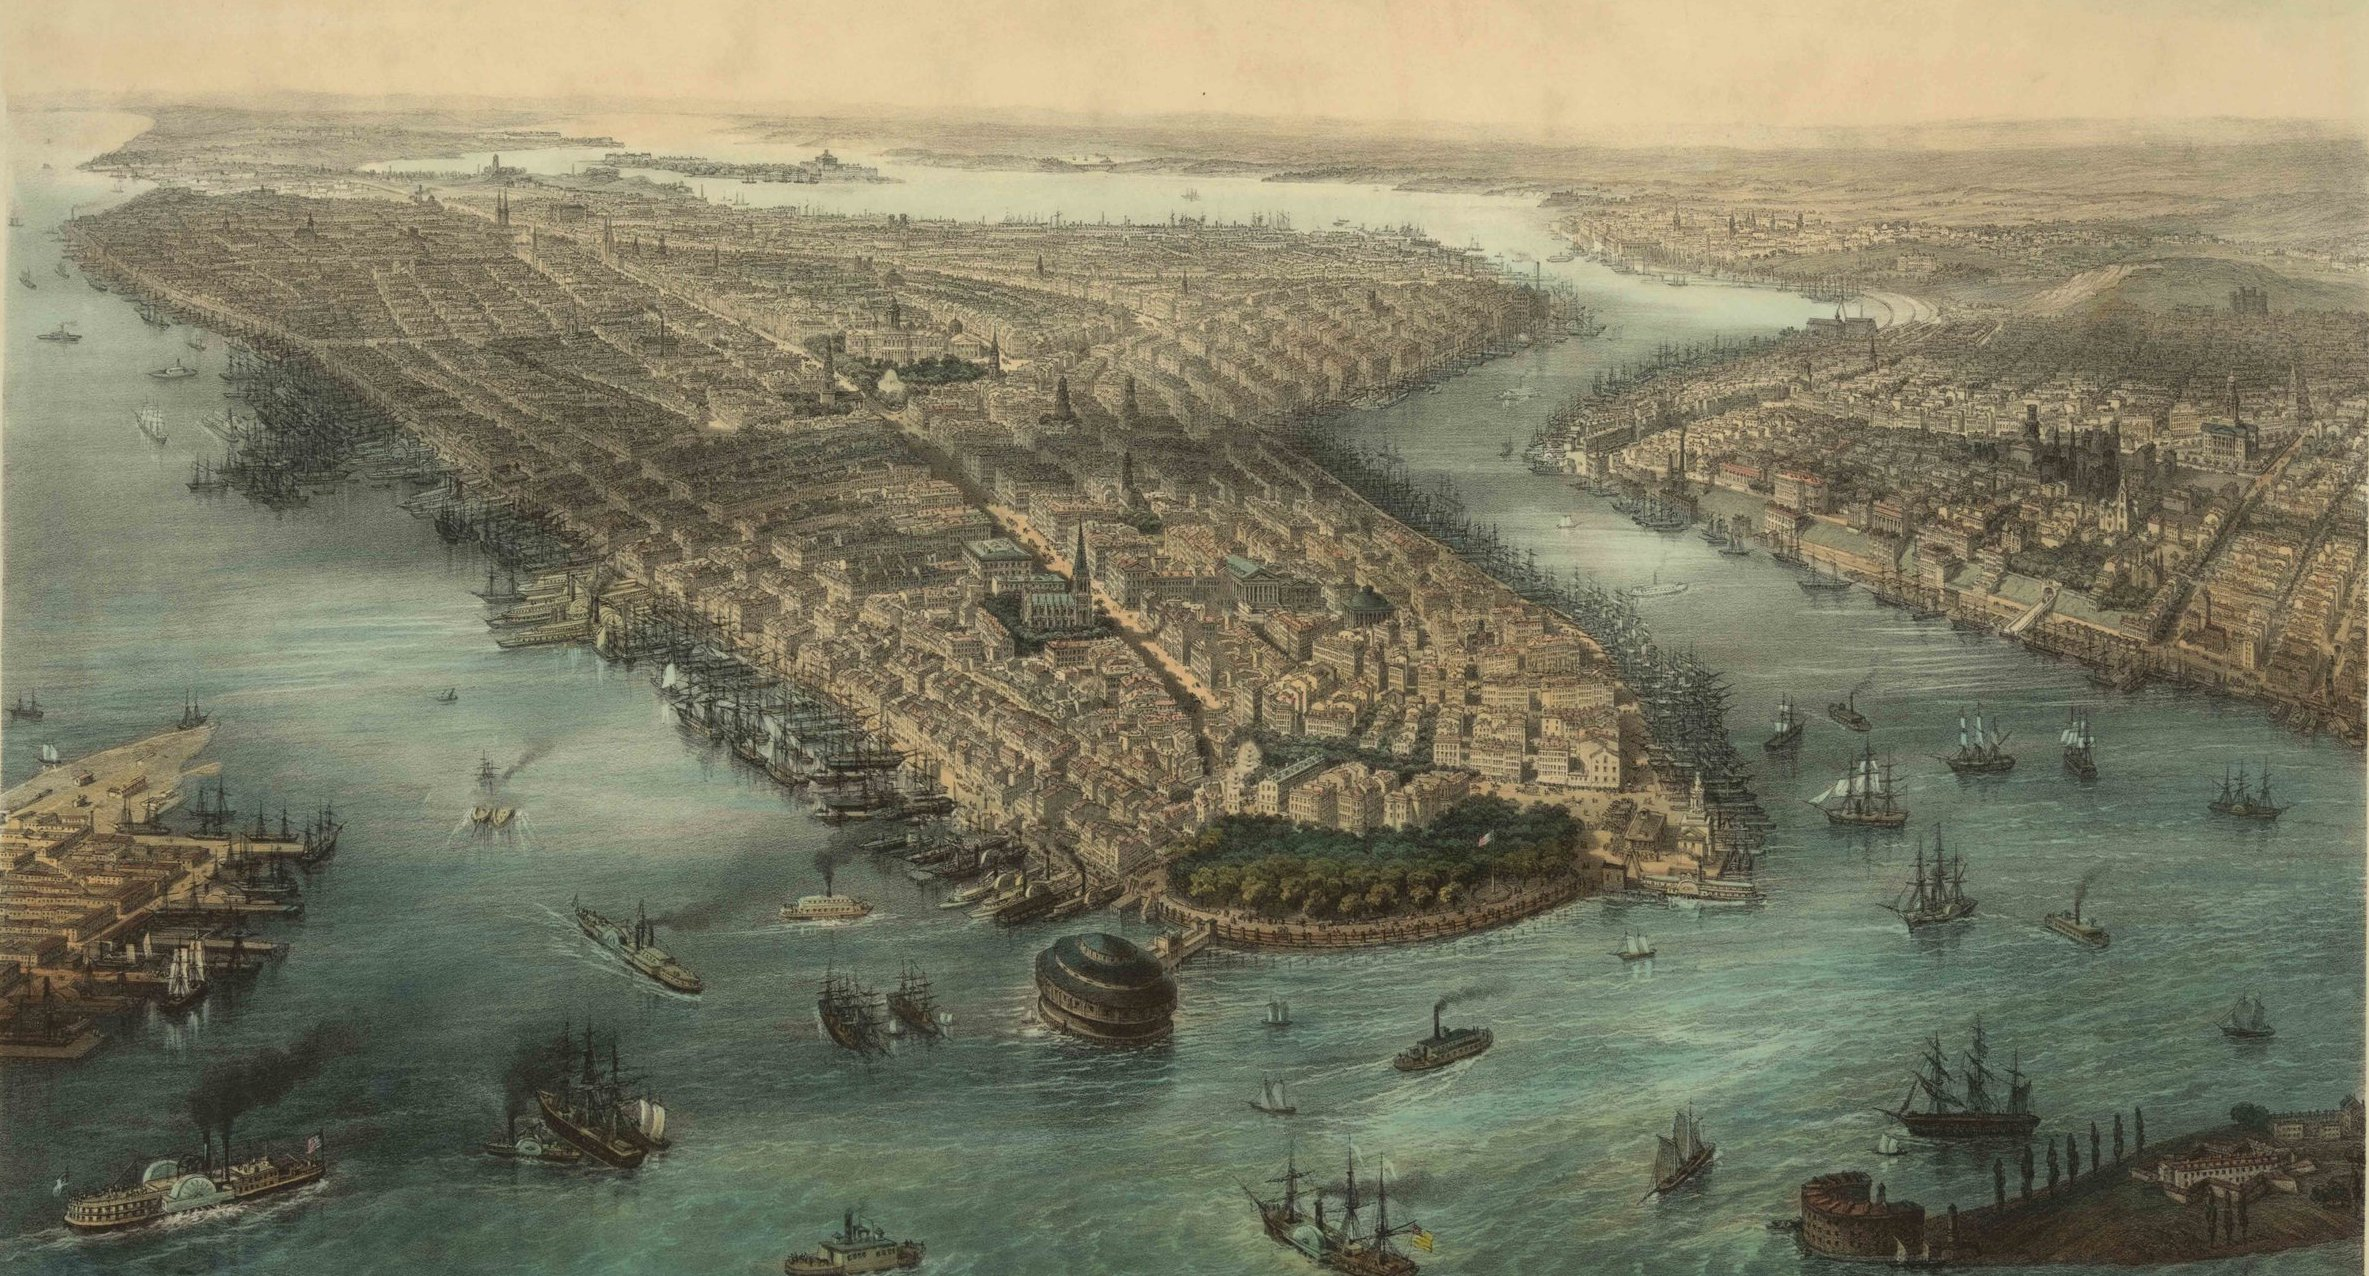 New York City bird's-eye view, 1850s.  Purchase a fine-art print .